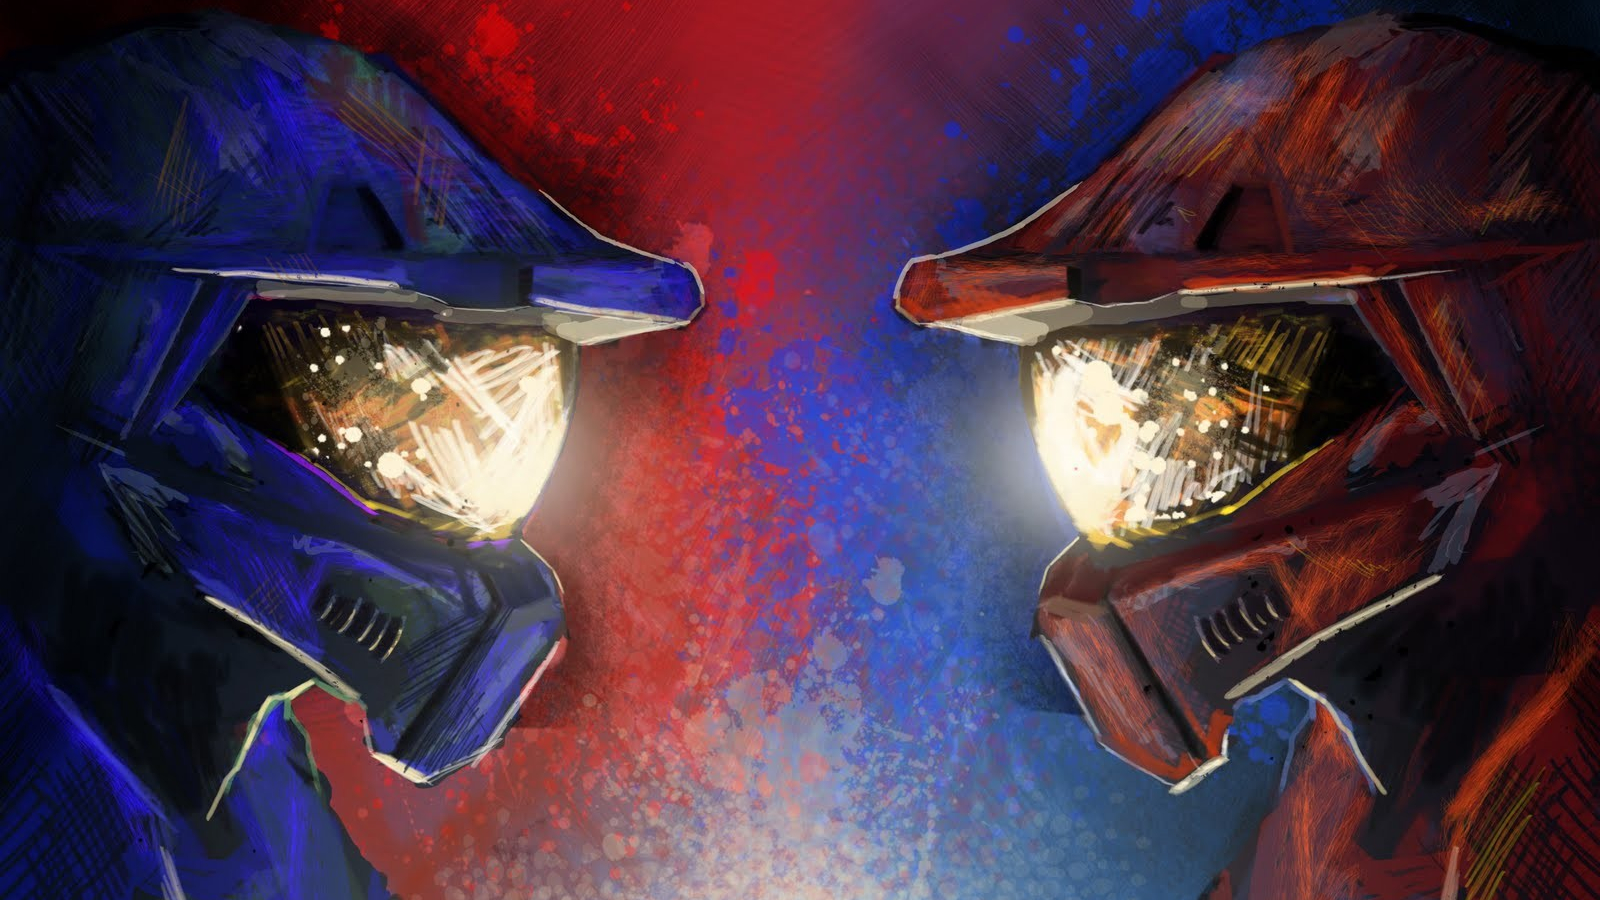 Free Download Red Vs Blue Backgrounds Sf Wallpaper 1600x1035 For